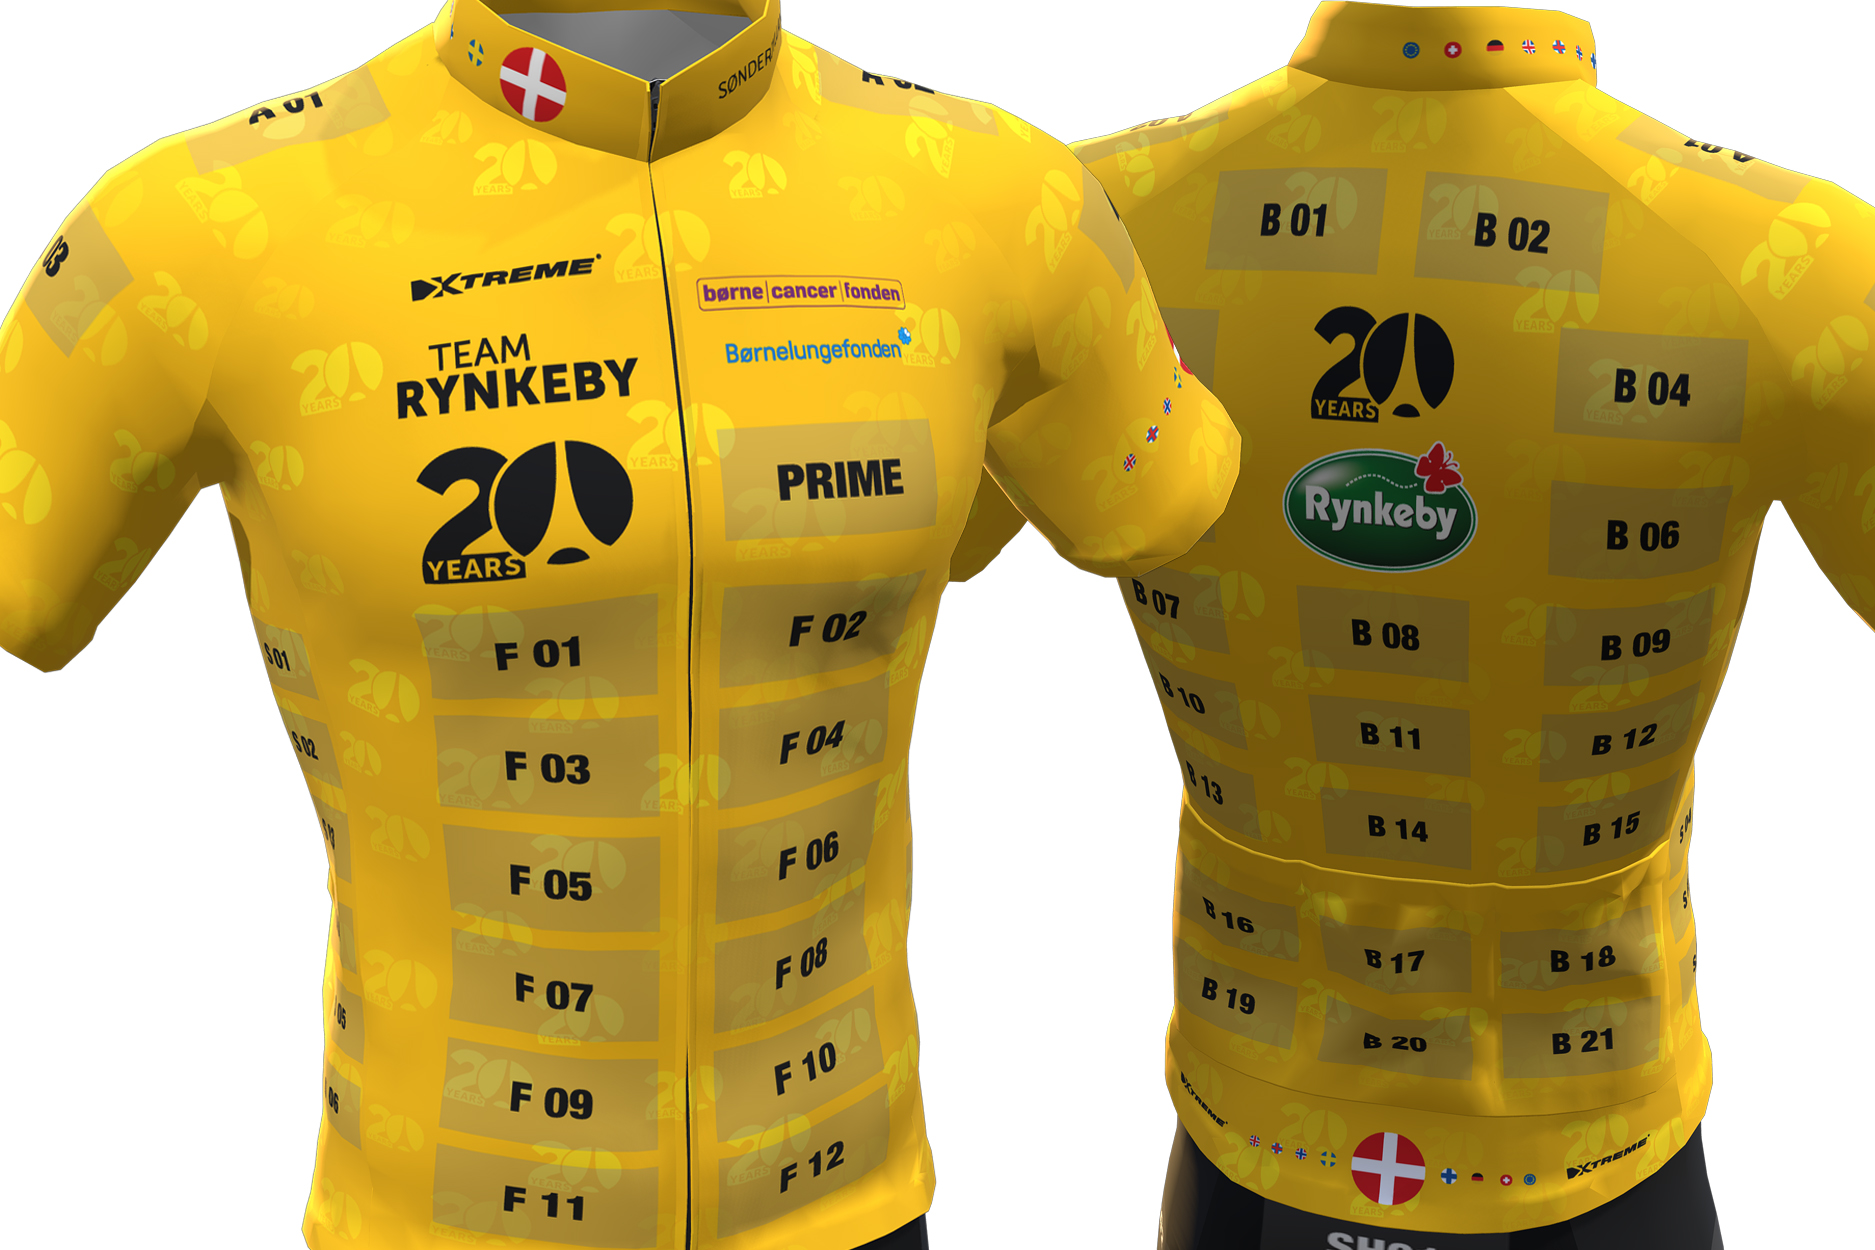 Team Rynkeby celebrates its history with anniversary clothing